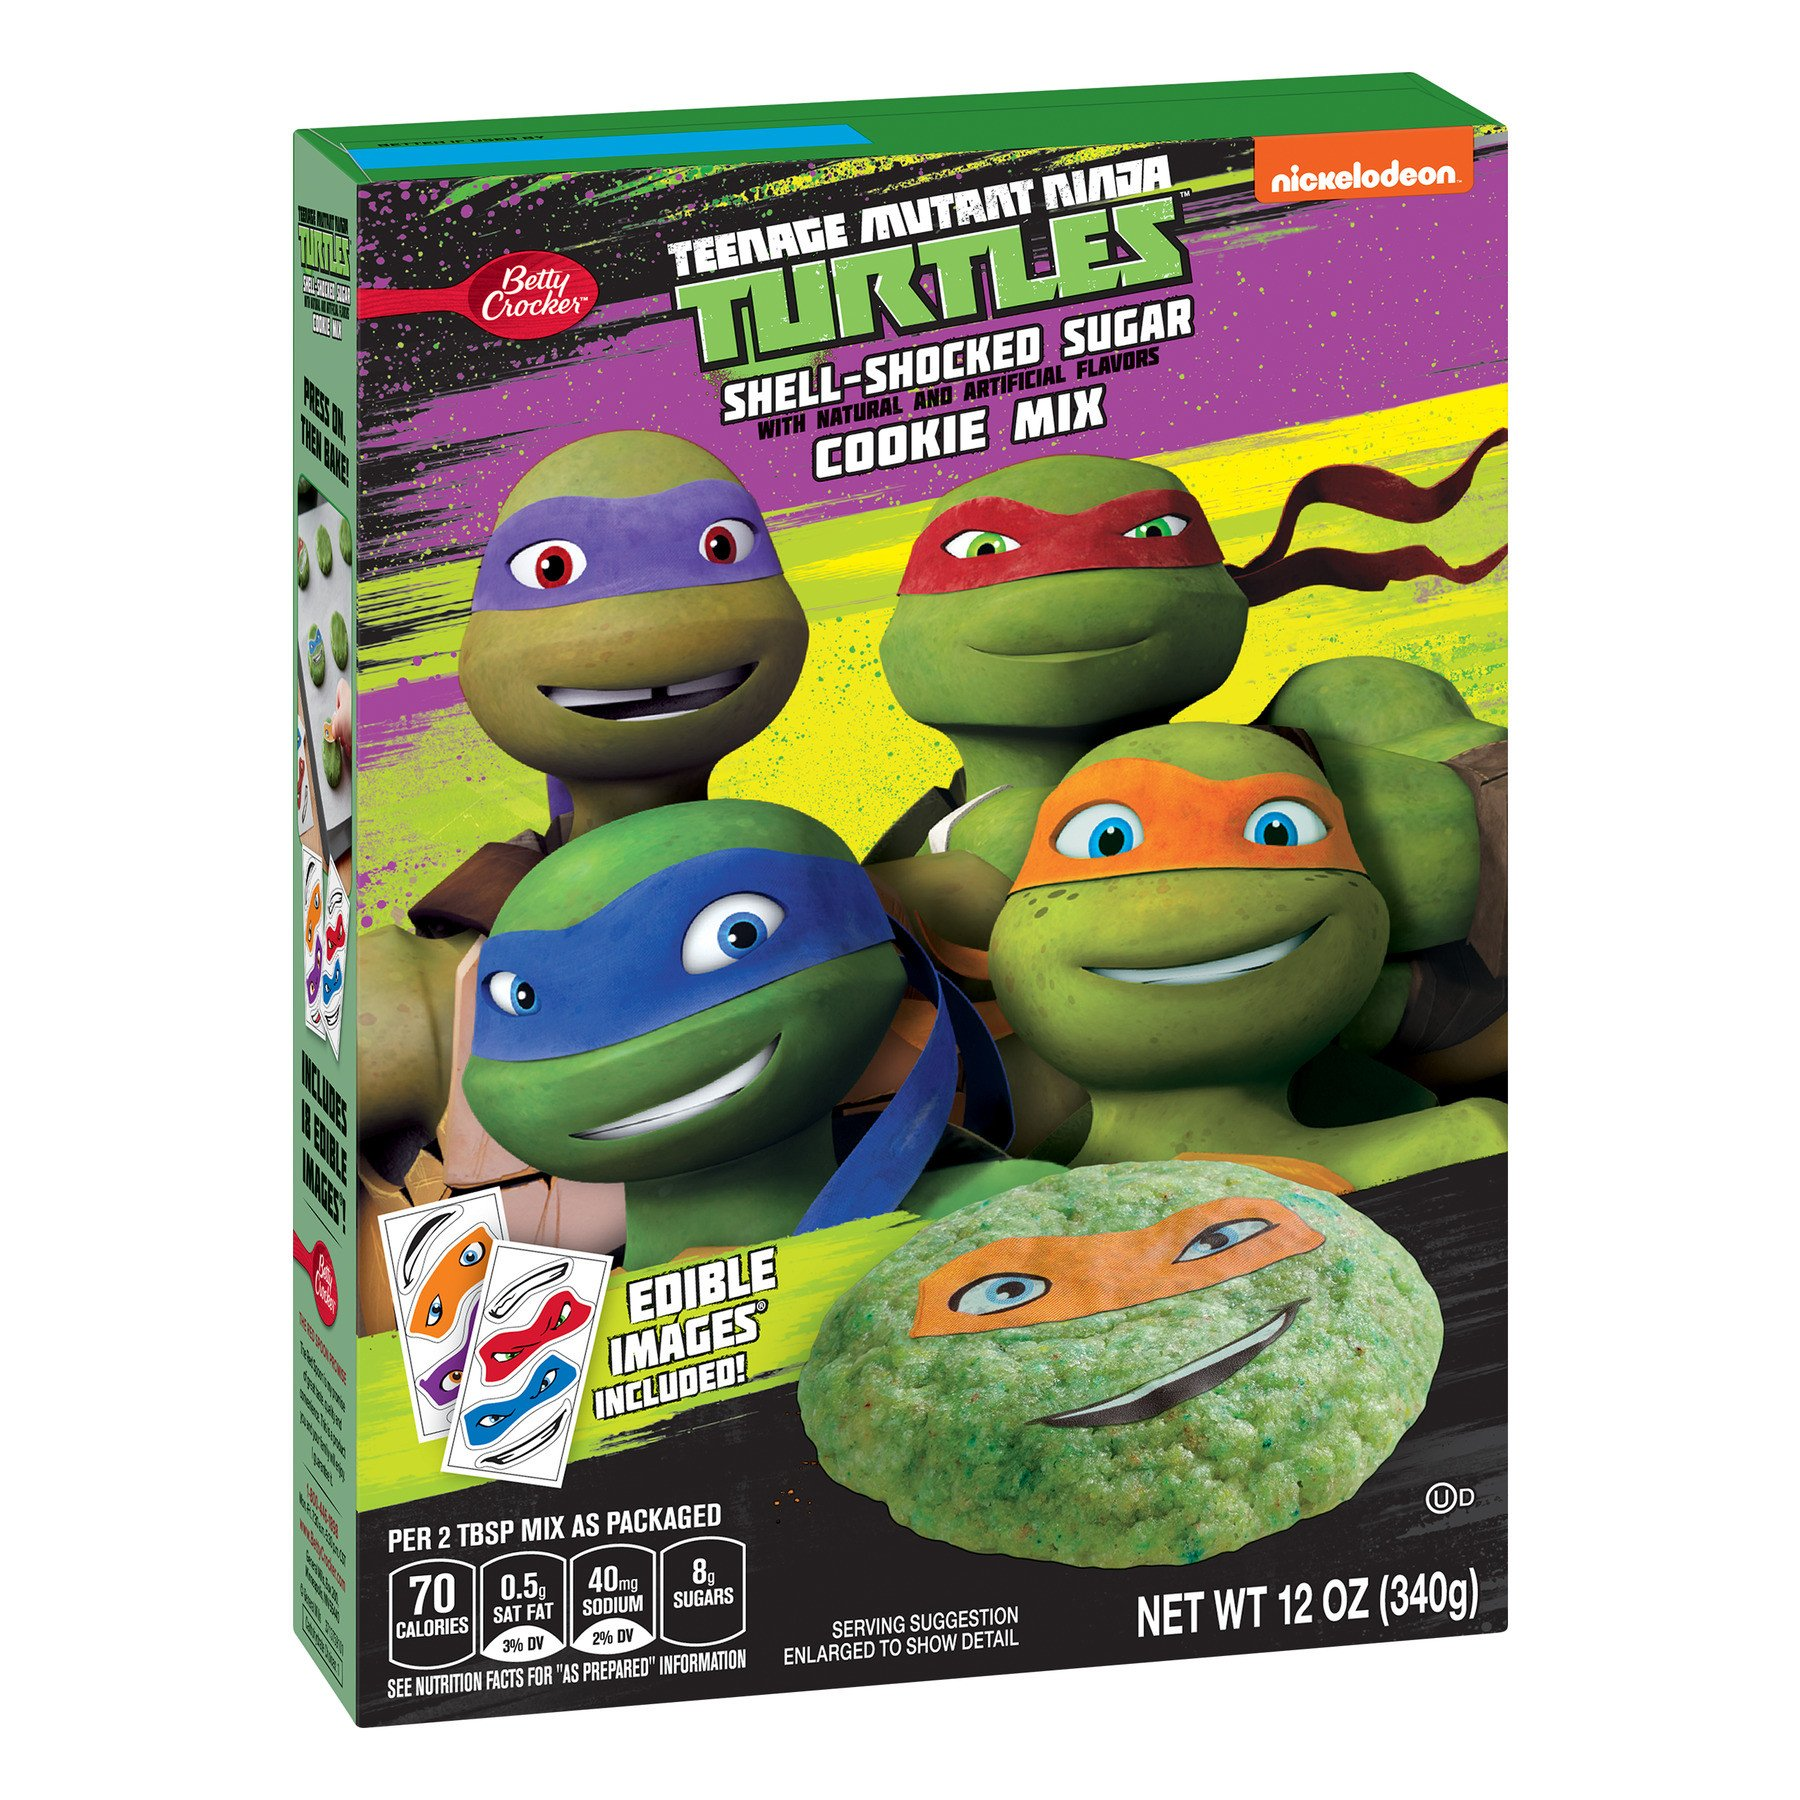 Ninja Turtle Bedroom Set Best Of Betty Crocker Teenage Mutant Ninja Turtle Shell Shocked Sugar Cookie Mix Walmart